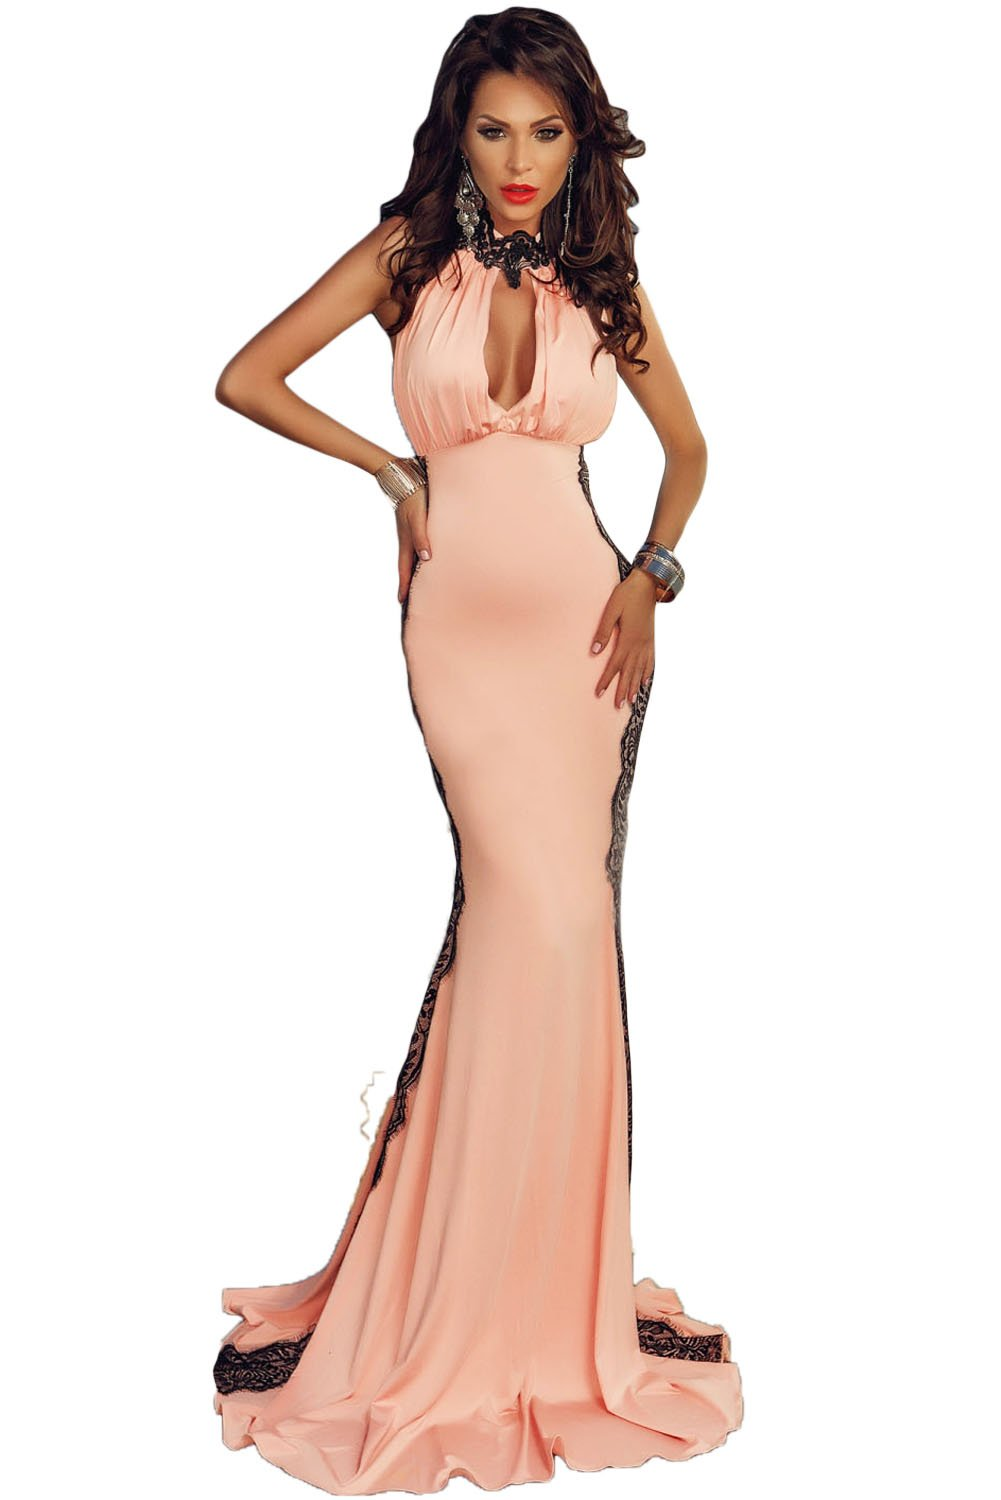 Peach Halterneck Lace Trim Party Gown Prom Cruise bridesmaid evening dress size M UK 10-12